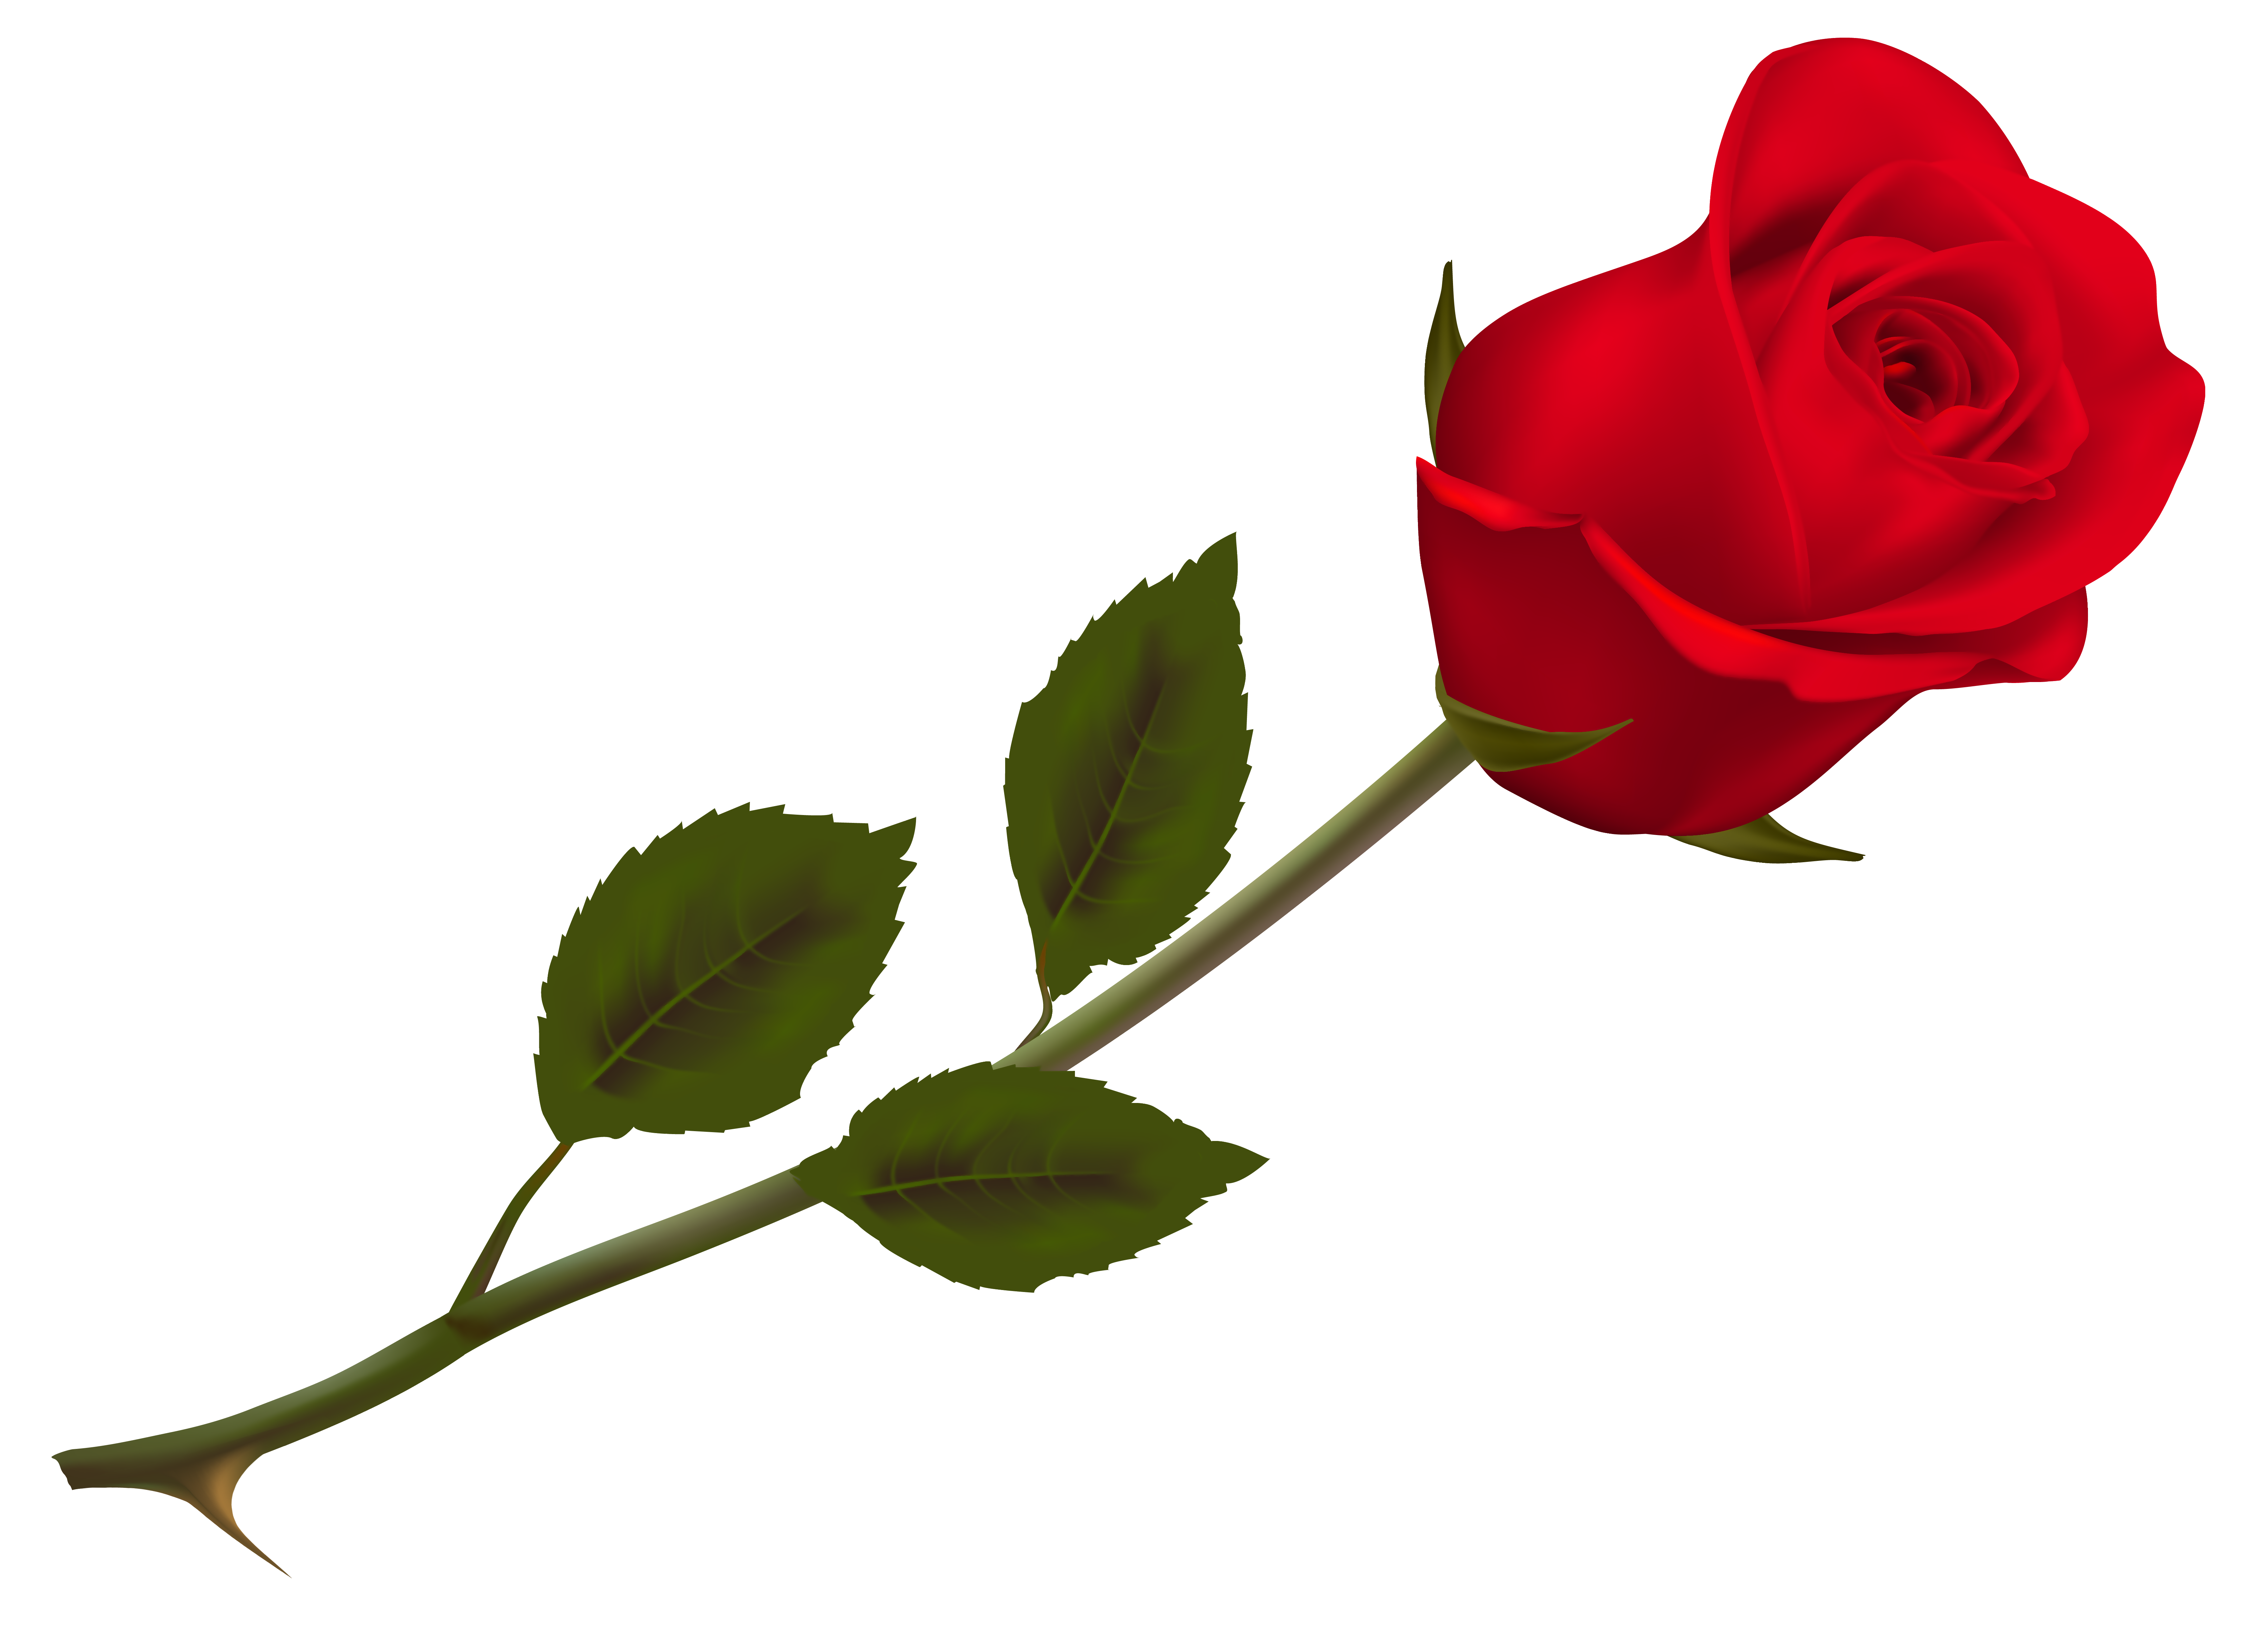 Flower rose png. Transparent beautiful red picture